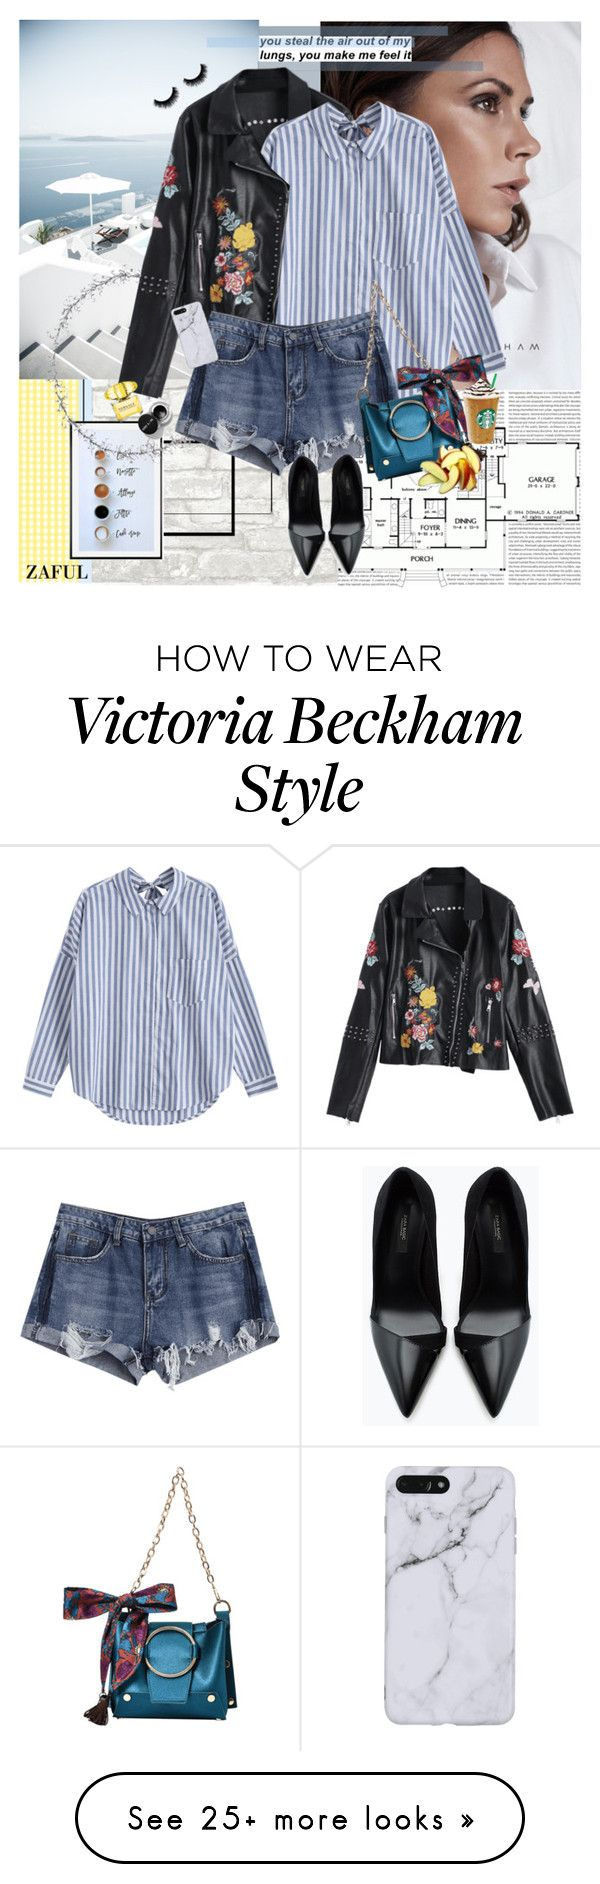 """""""How to style - Striped Shirt (1)"""" by nensy on Polyvore featuring Pottery Barn, Zara, Versace, leatherjacket, everydaystyle, denimshorts, stripedshirt and zaful"""